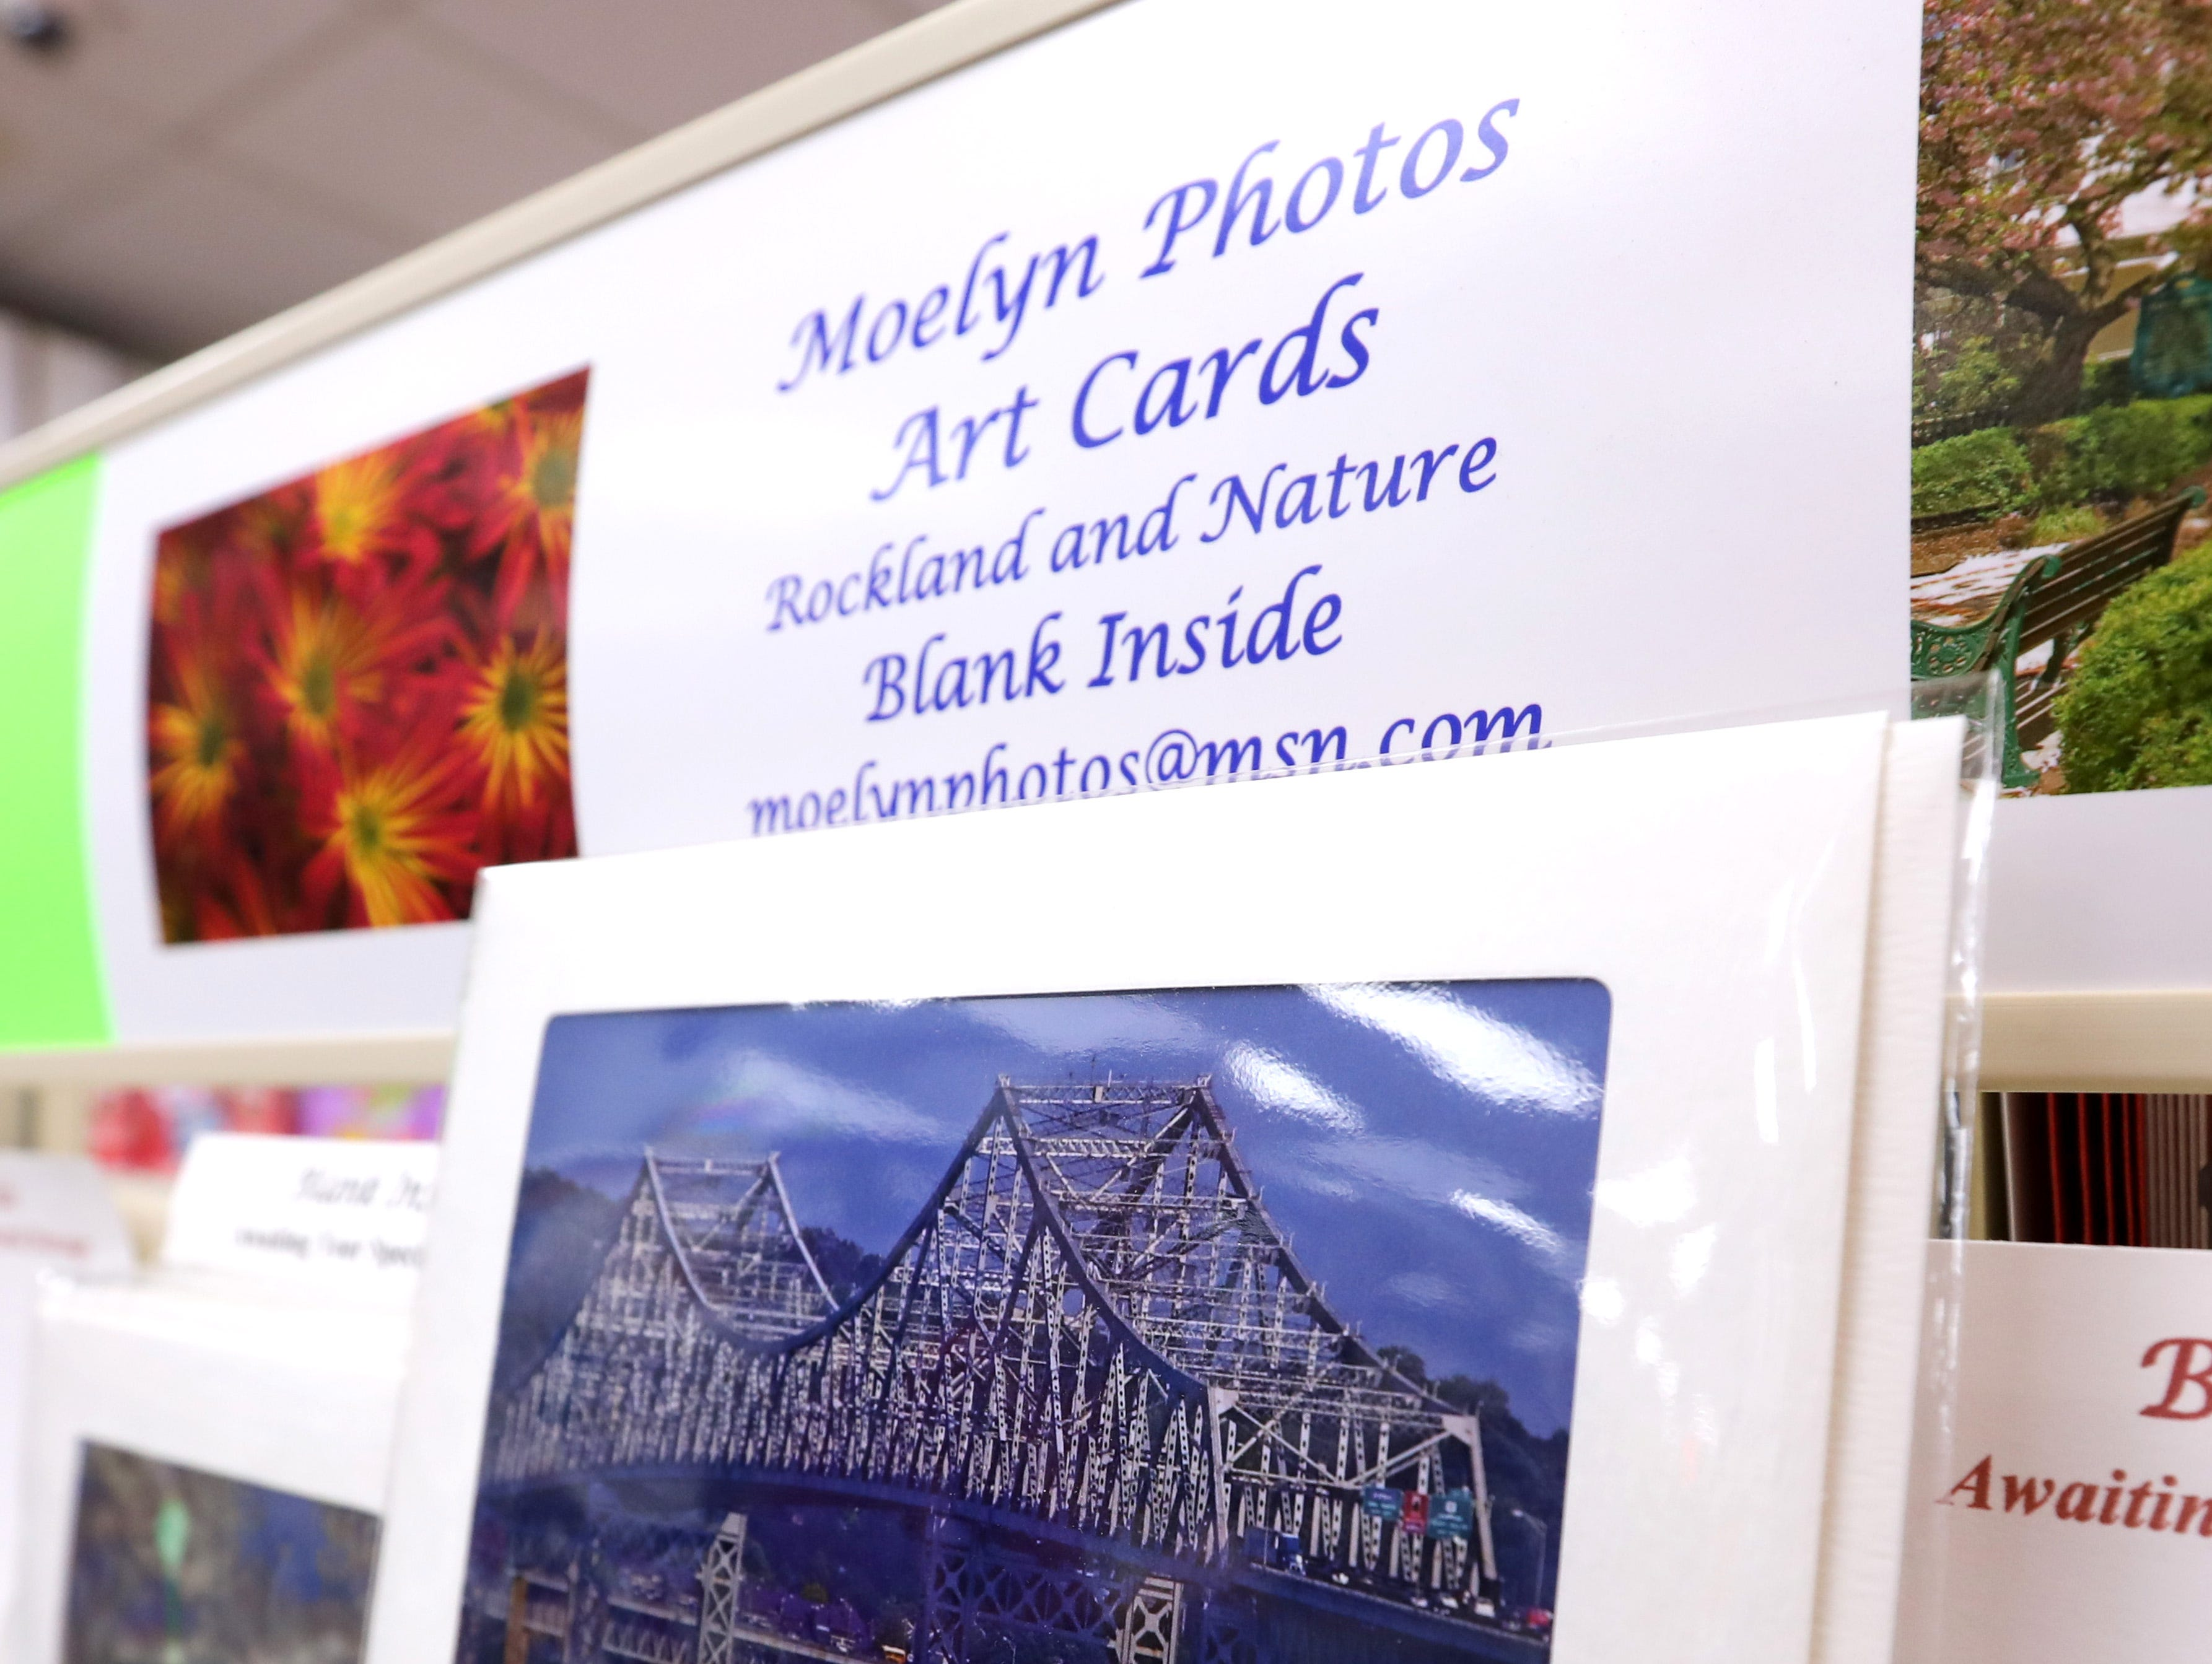 Greeting card with photo of the Tappan Zee Bridge by Moelyn Photos at Koblin's Pharmacy in Nyack Jan. 9, 2019.